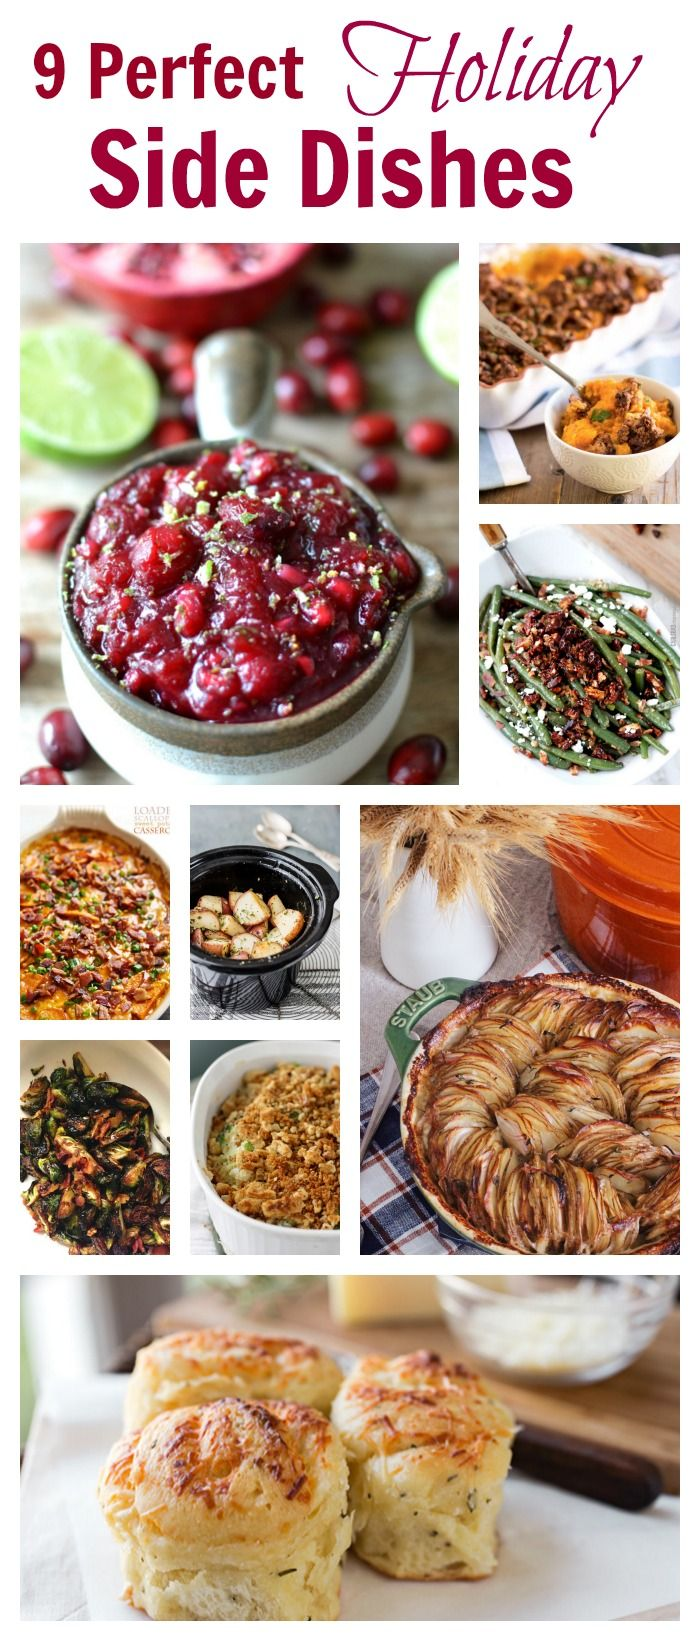 Food faith amp design thanksgiving goodies - 9 Thanksgiving Side Dishes